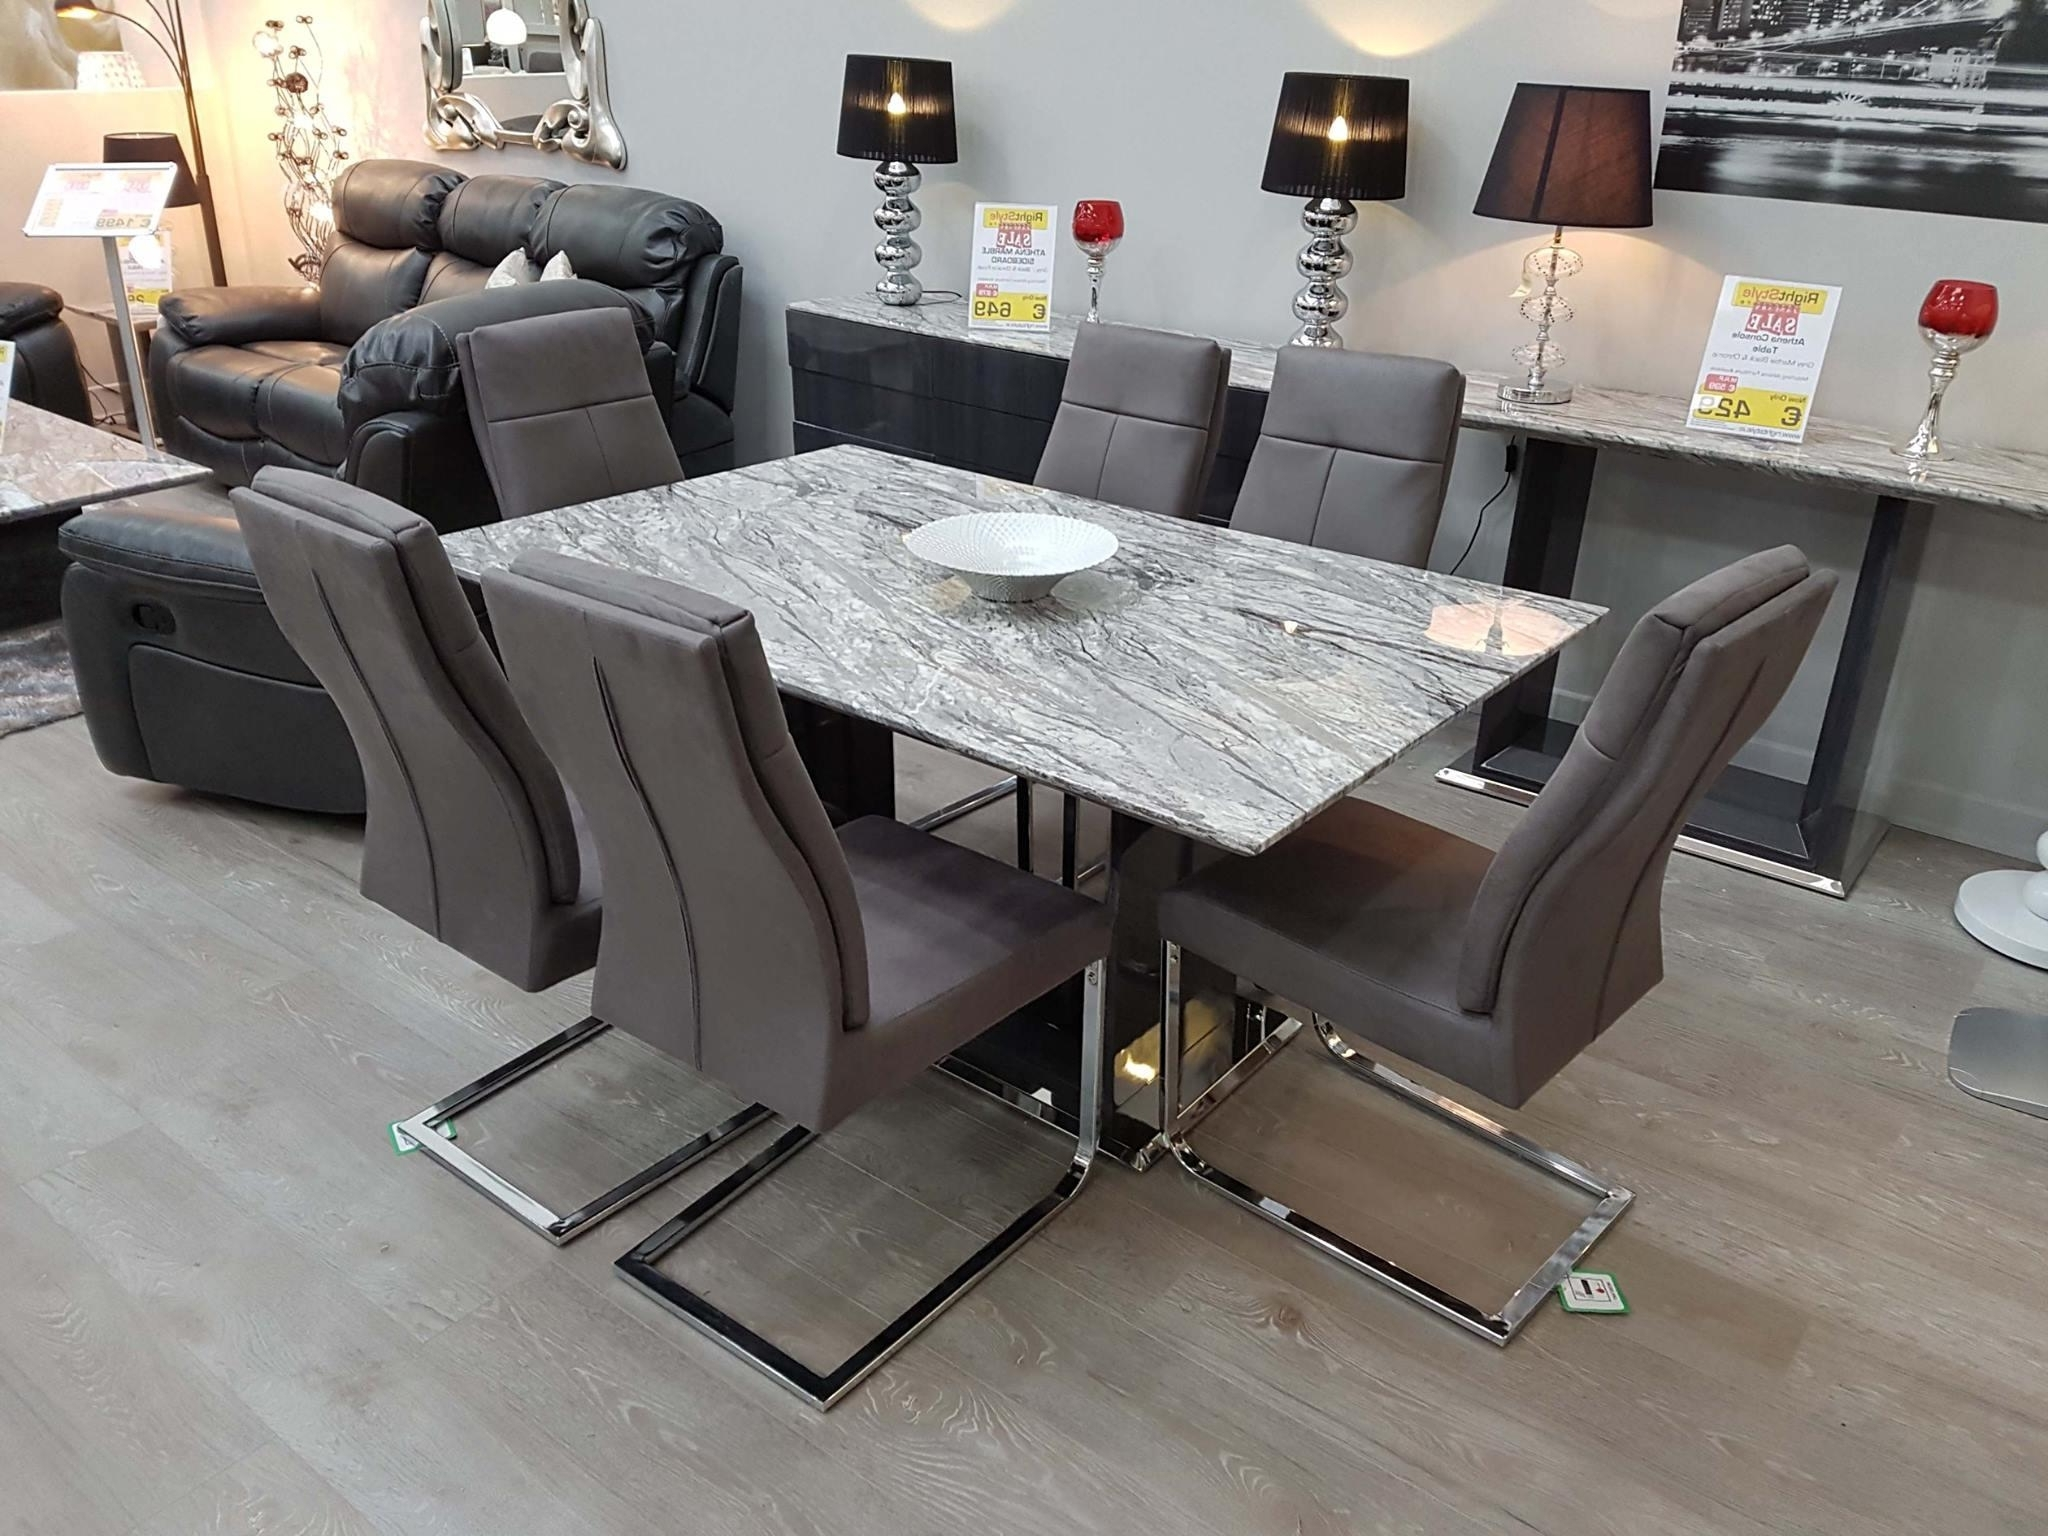 Solid Marble Dining Tables Inside Most Recent Athena 160Cm Solid Marble Dining Set – Dublin, Ireland Furniture (View 20 of 25)